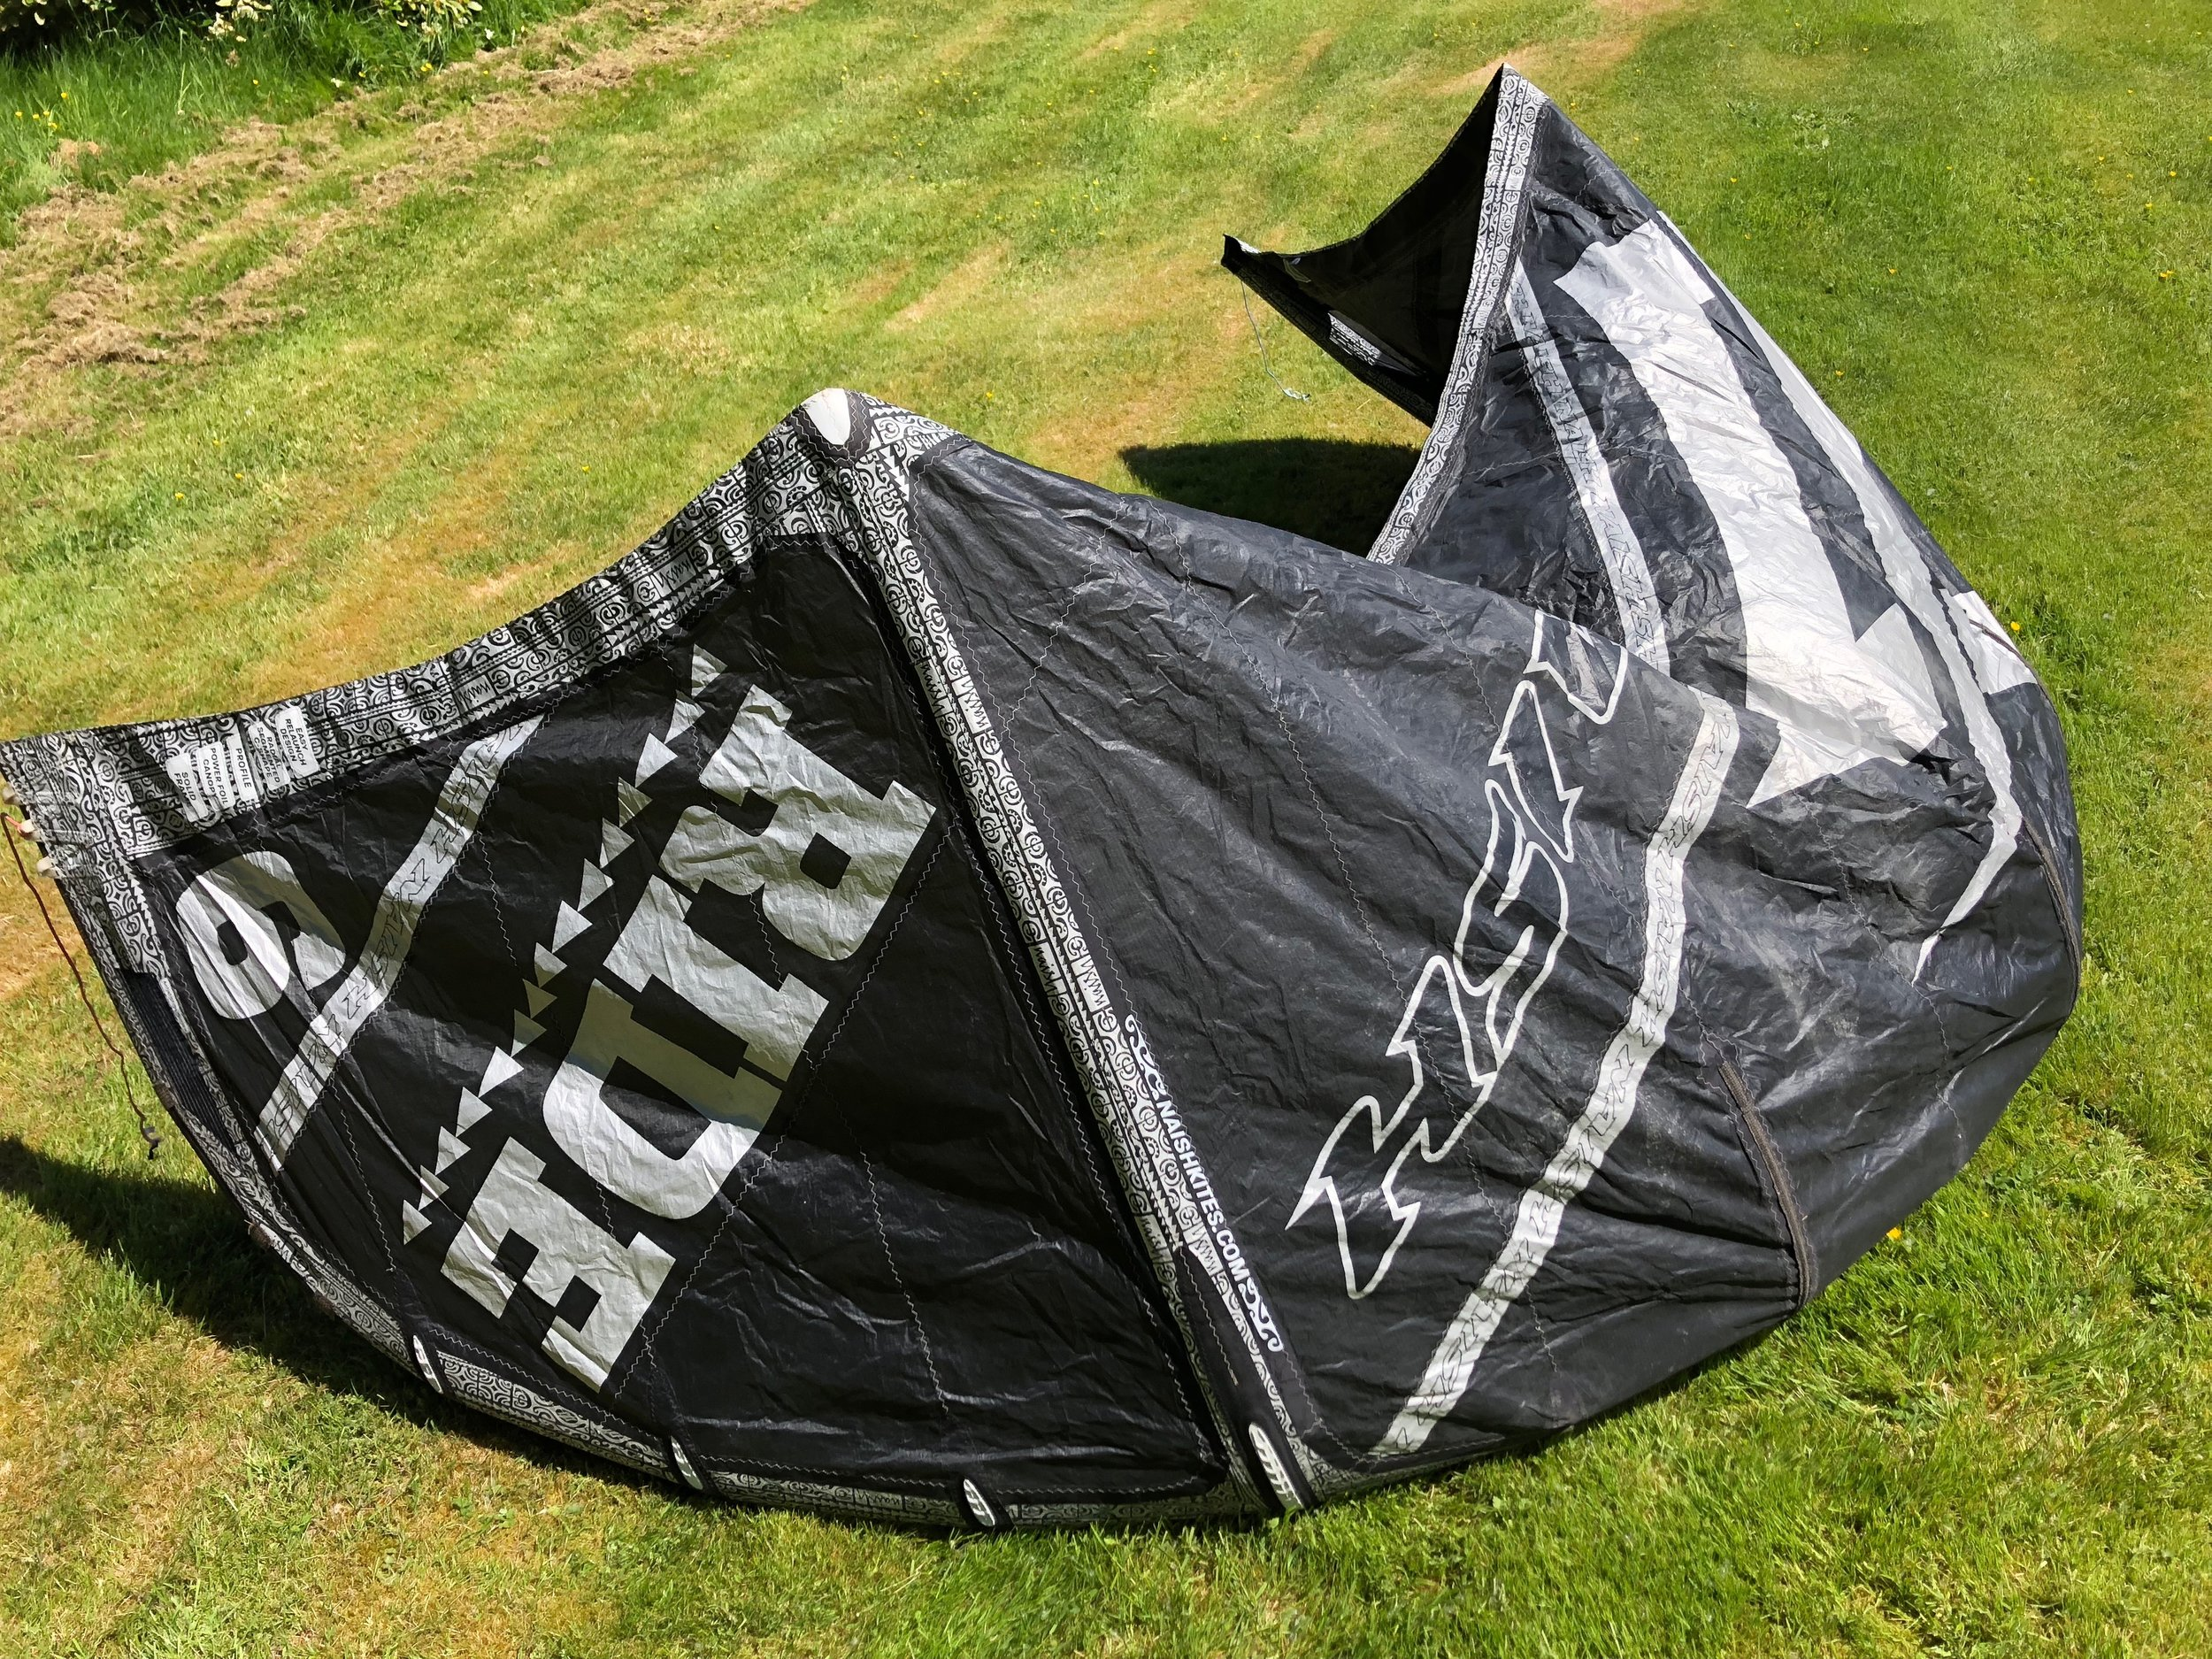 Naish Ride 2013 6m -$200 - Naish Ride is a 2 strut canopy and is very strong and stable for a 6m used in higher winds. .